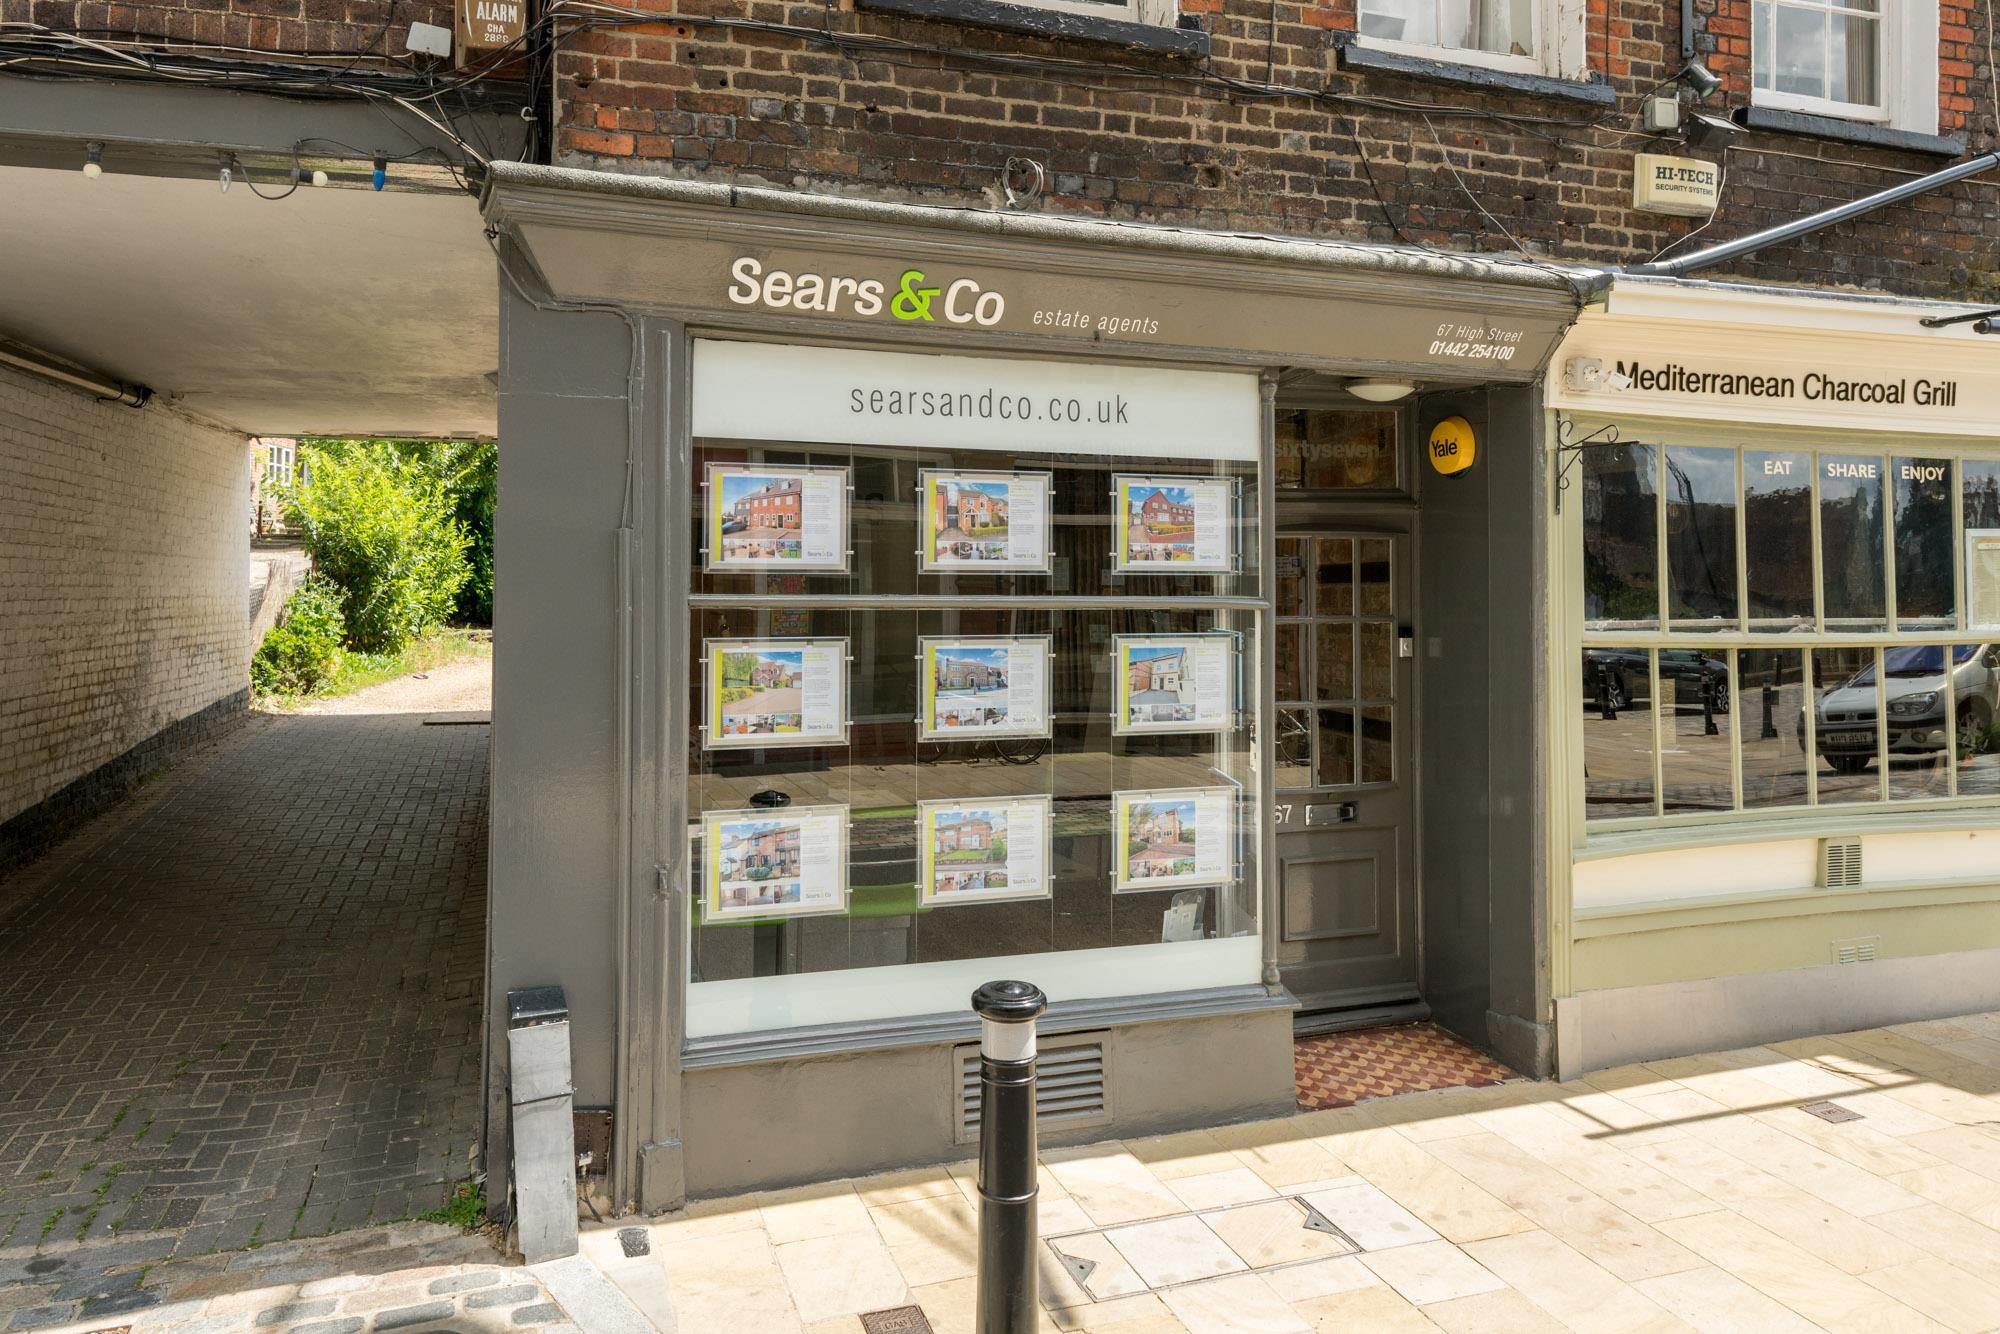 Sears & Co have arrived at 67 High Street.